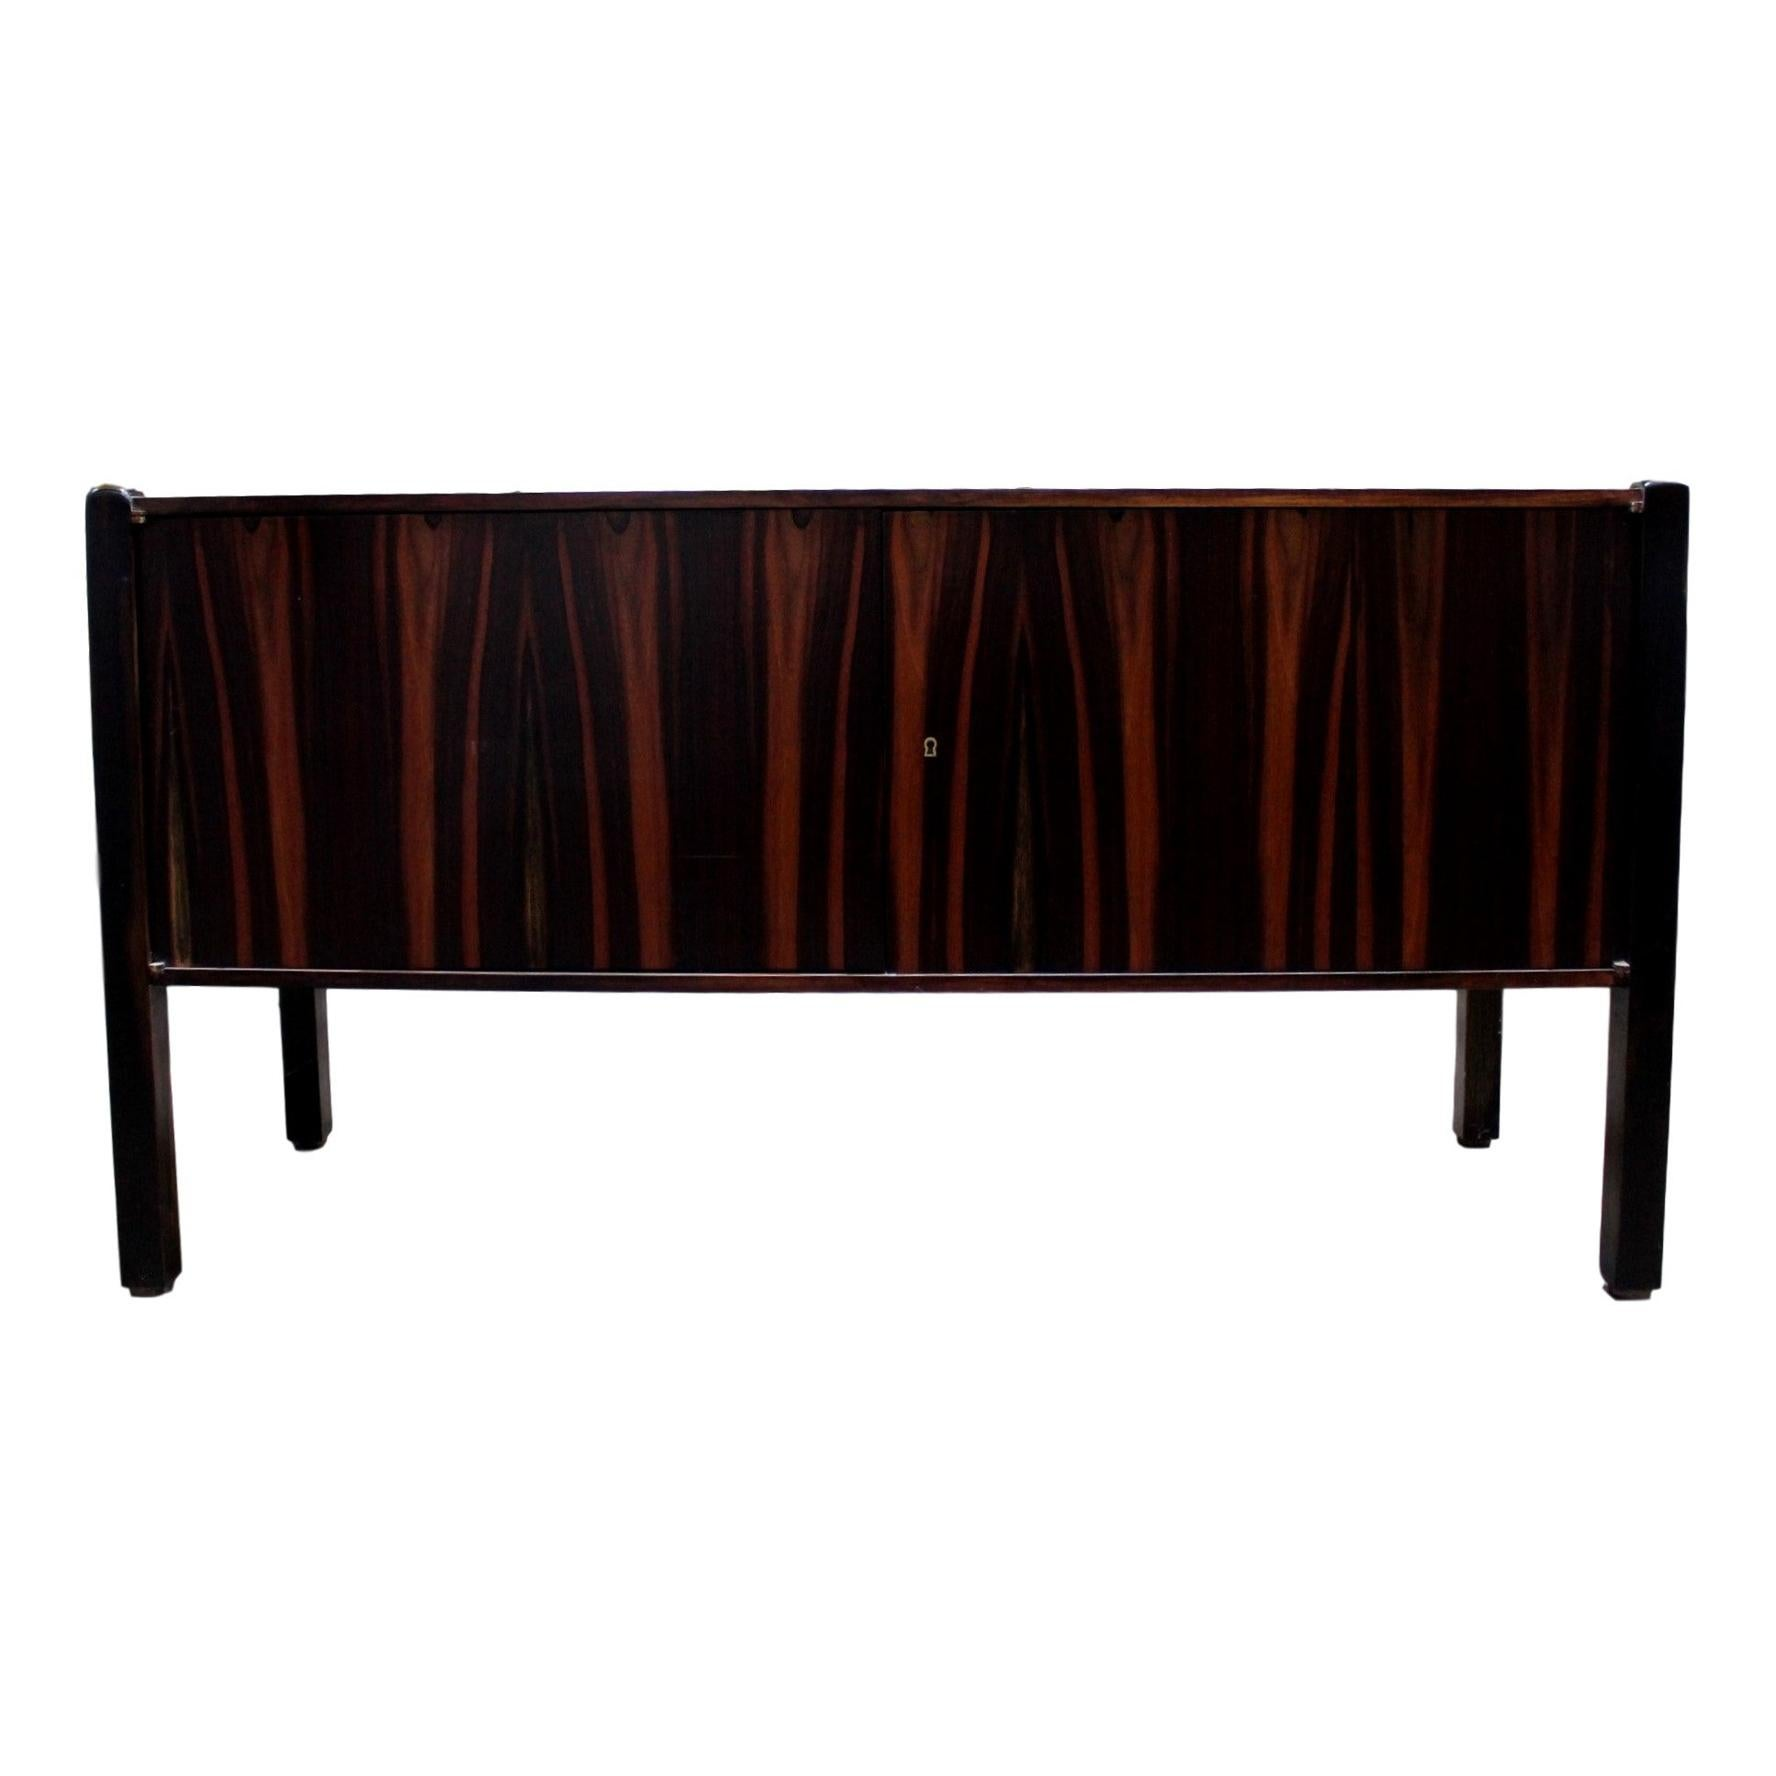 Sergio Rodrigues, Credenza Luciana, Sideboard Luciana, 1960s